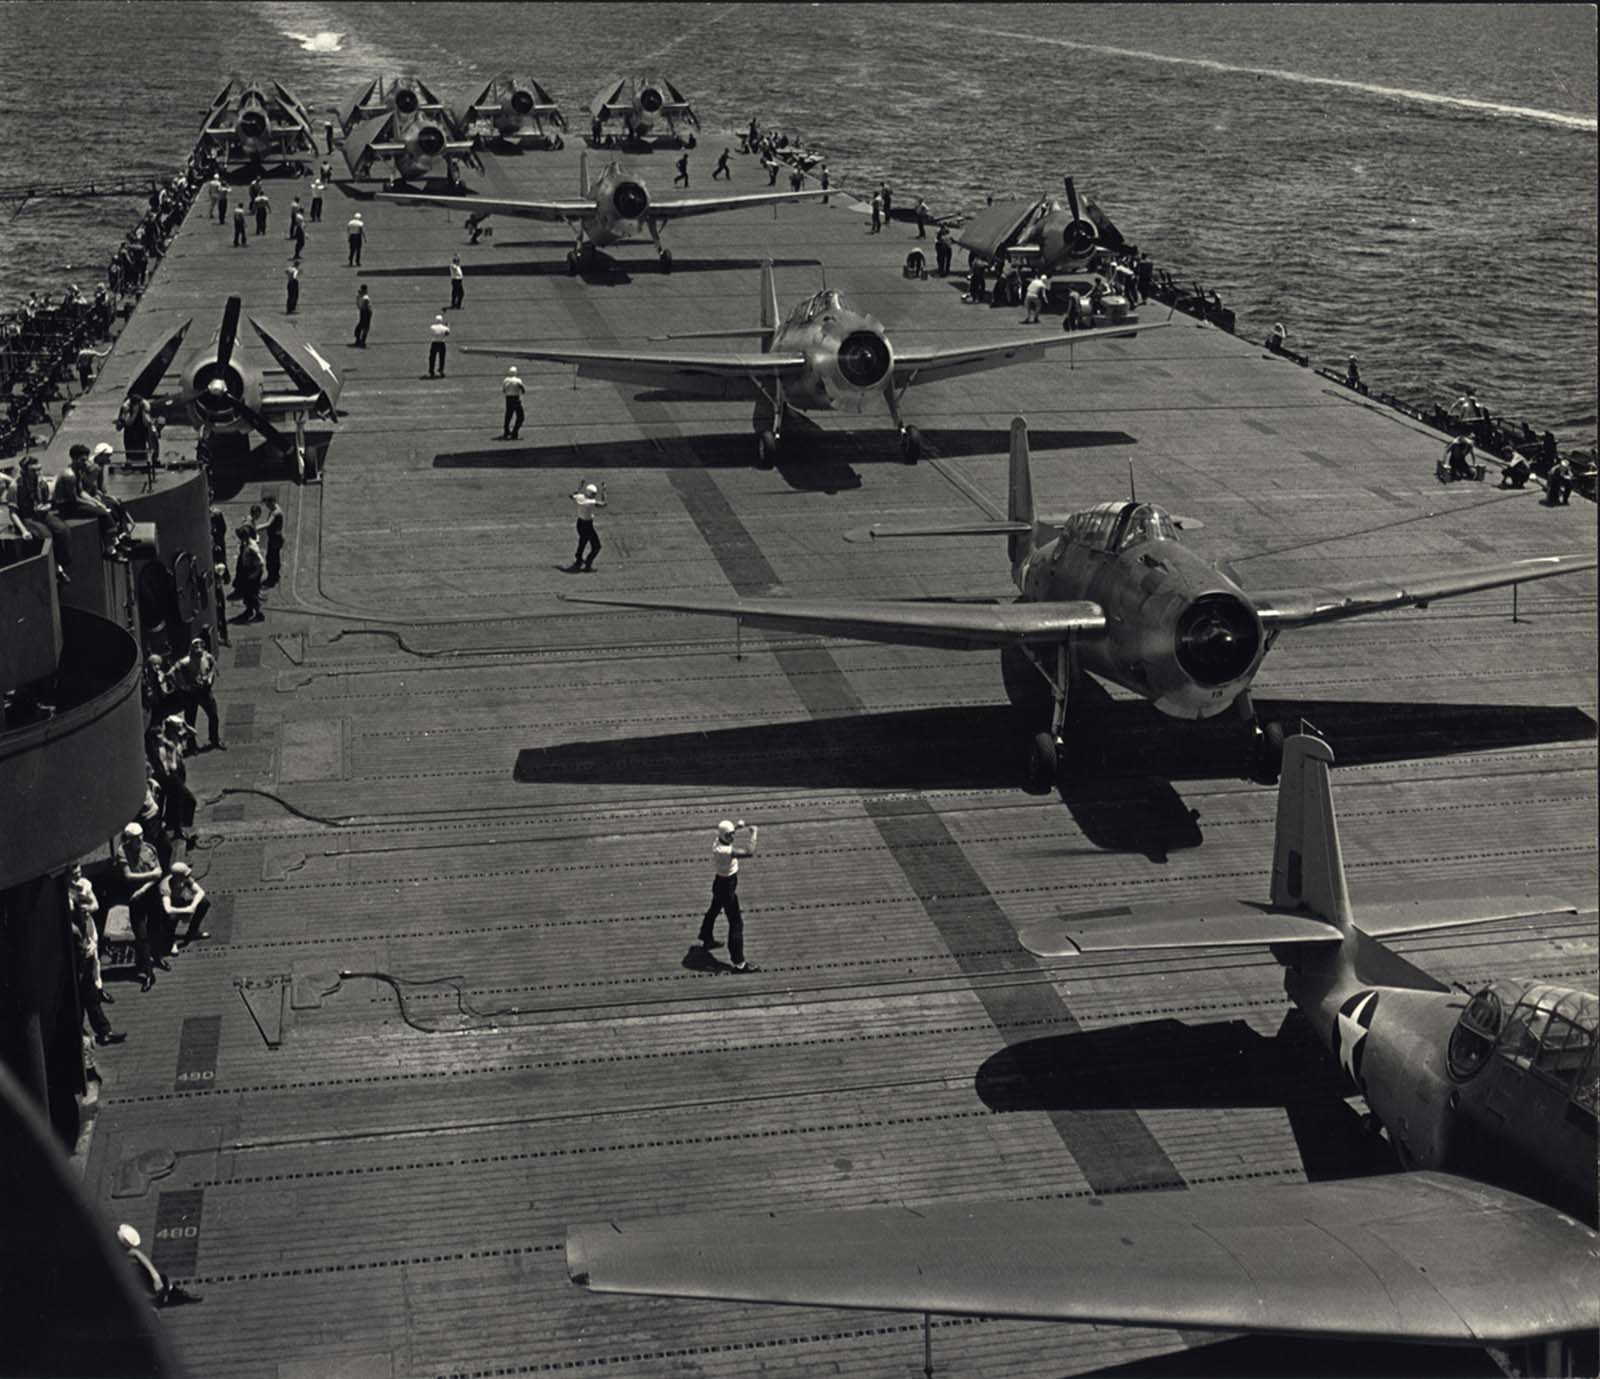 Aircraft's preparing for take off from U.S.S. Yorktown, ca. 1943.